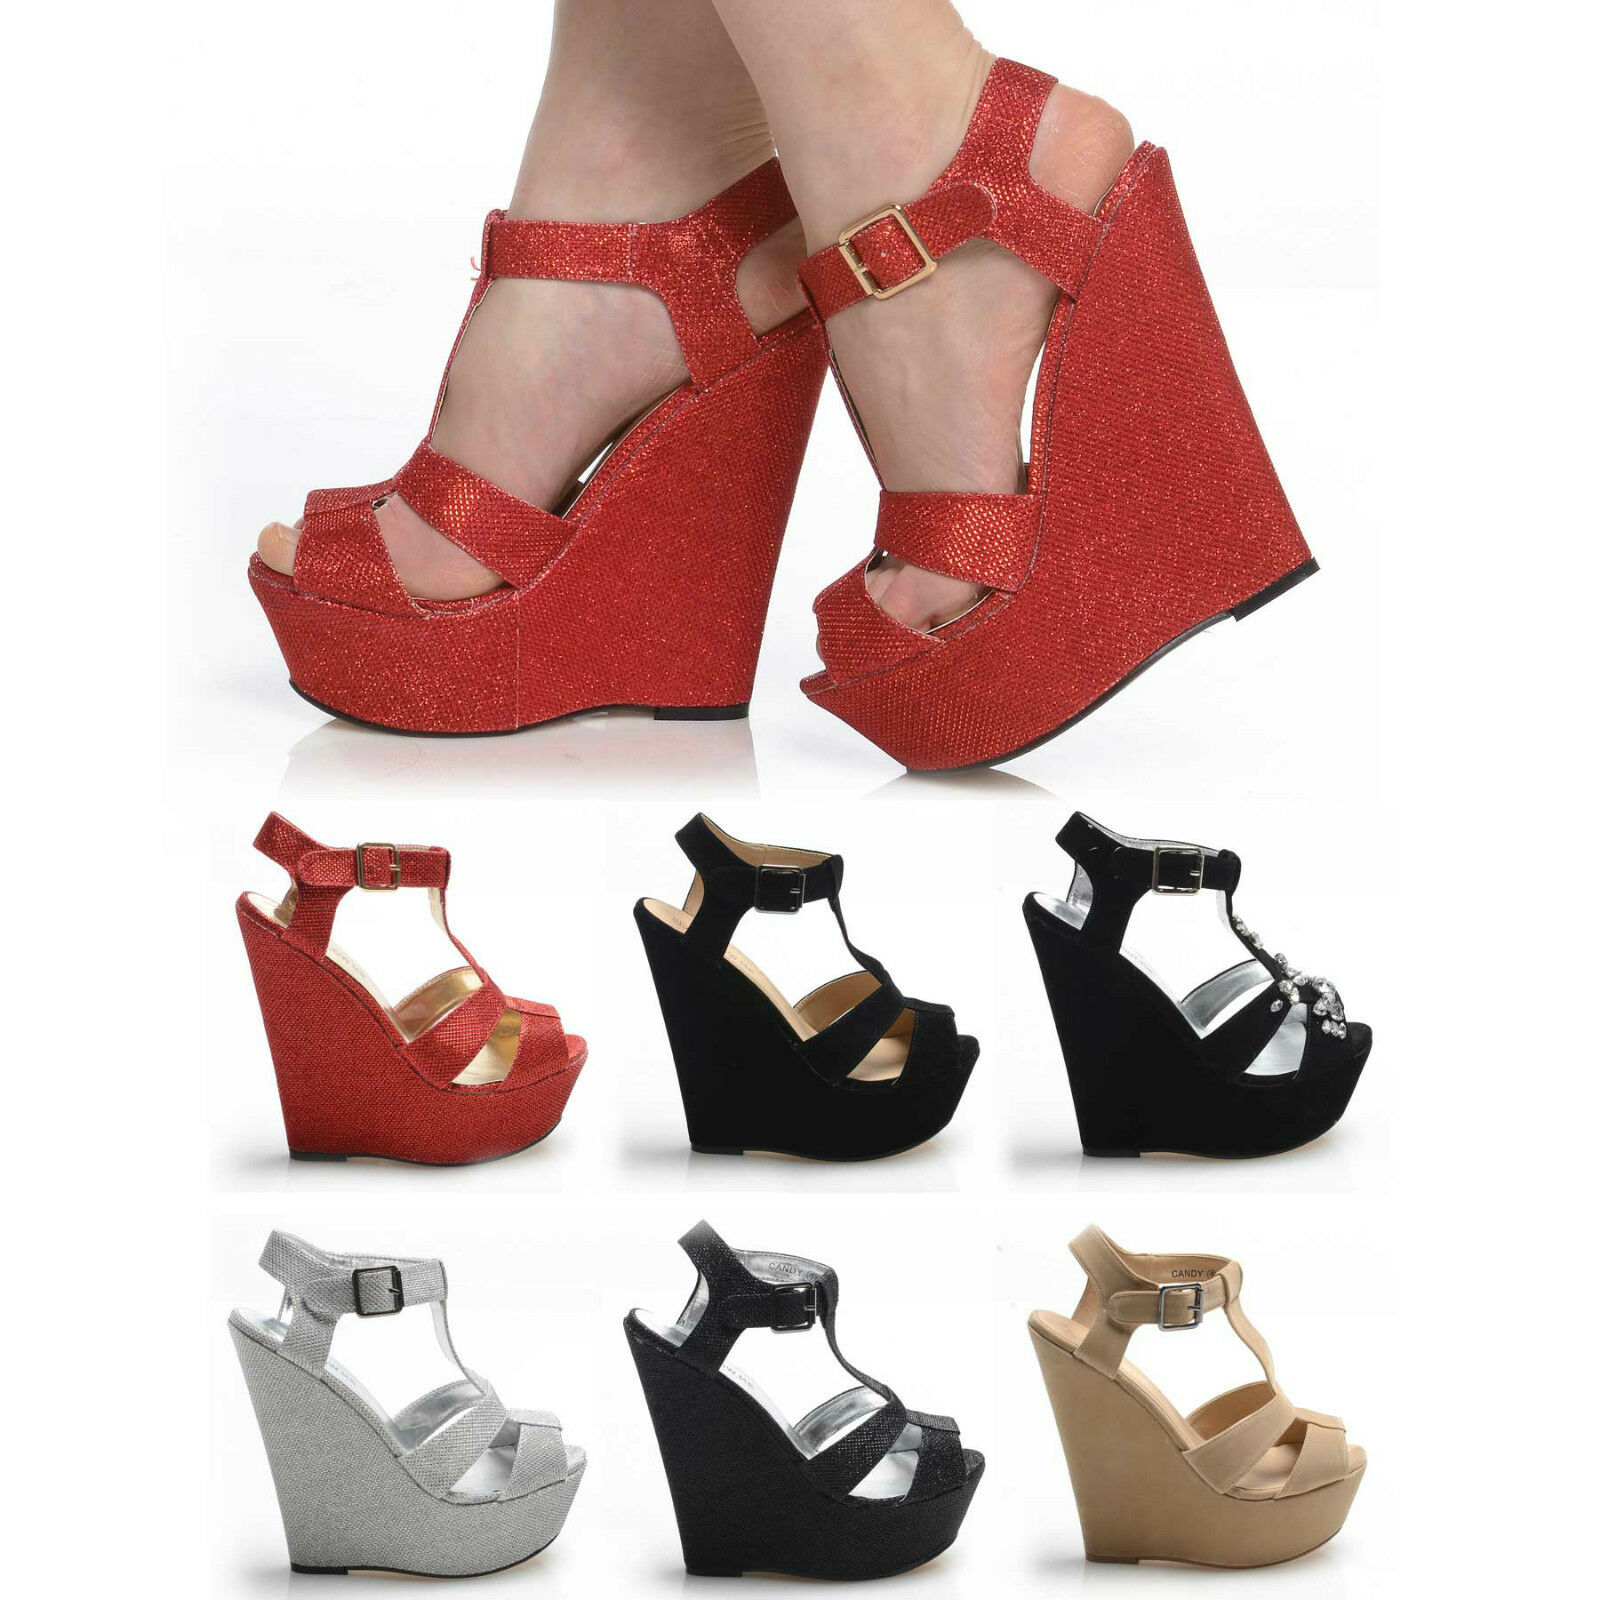 Moda jest prosta i niedroga THICK STRAP HIGH HEEL WEDGES PLATFORMS COLOURS SHOES CLUB PARTY EVENT STUNNING